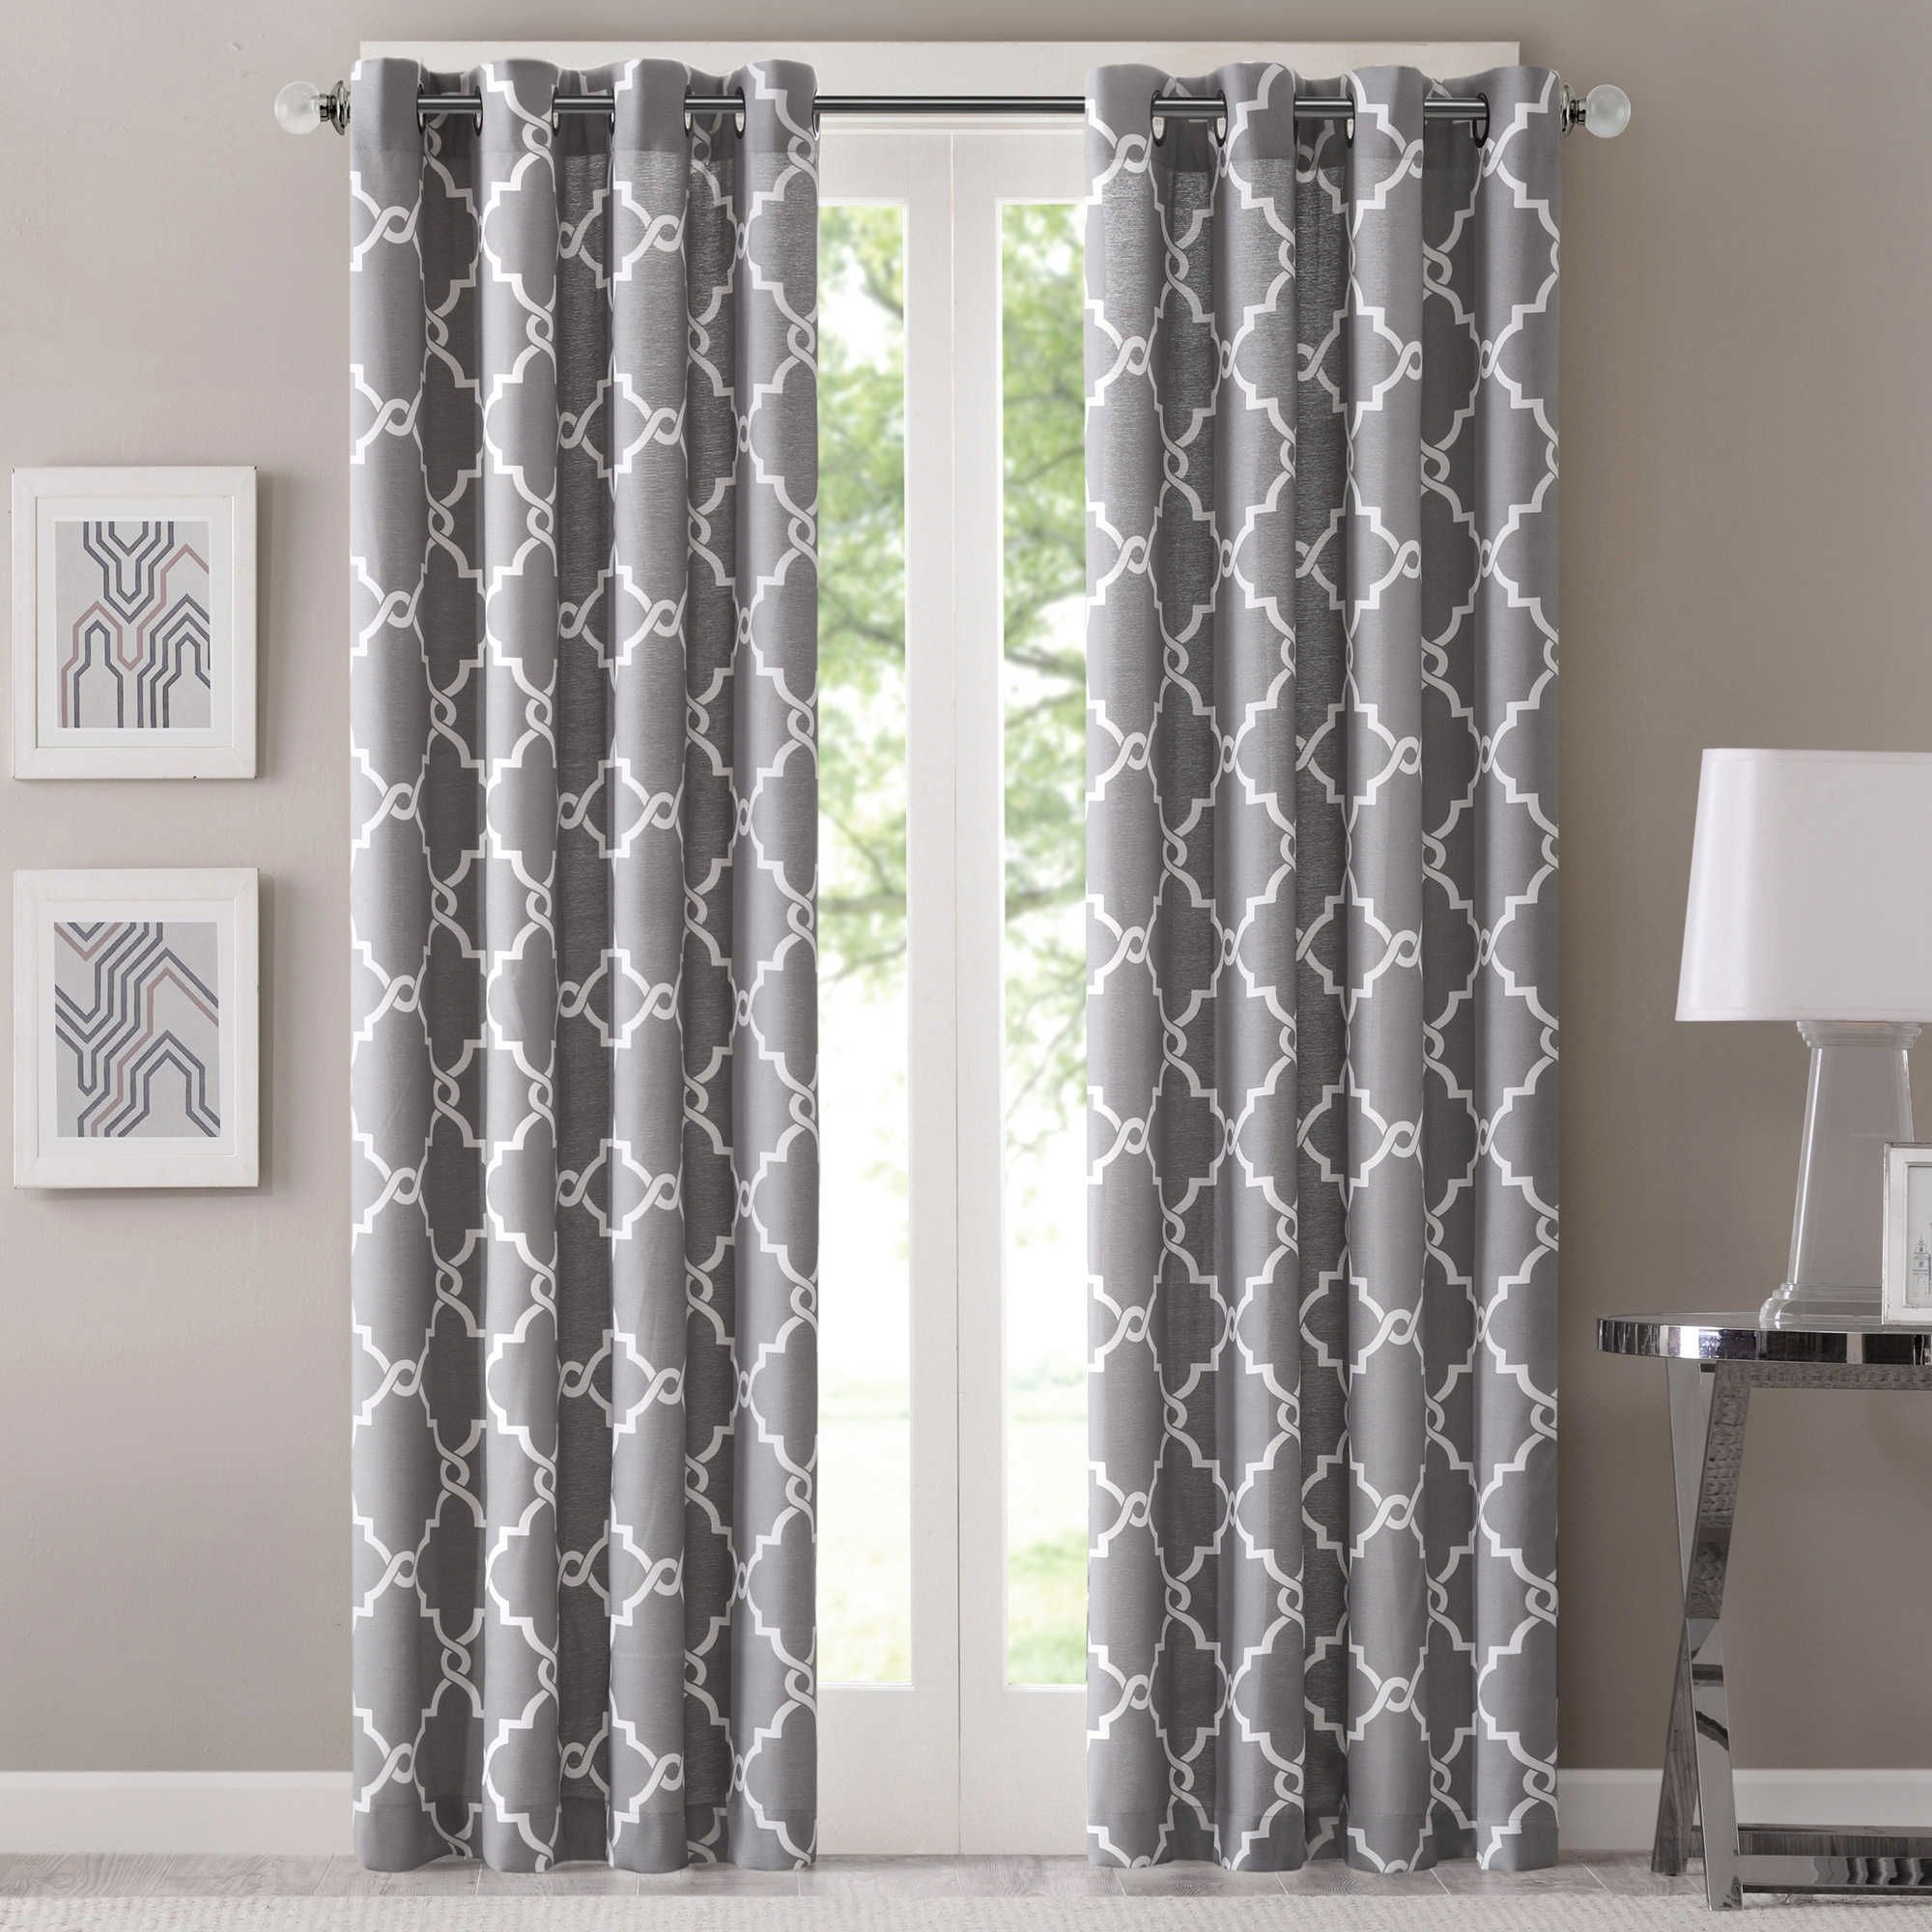 Fretwork 95 Inch Window Curtain Panel In Grey | Curtains Pertaining To Pastel Damask Printed Room Darkening Grommet Window Curtain Panel Pairs (View 13 of 20)